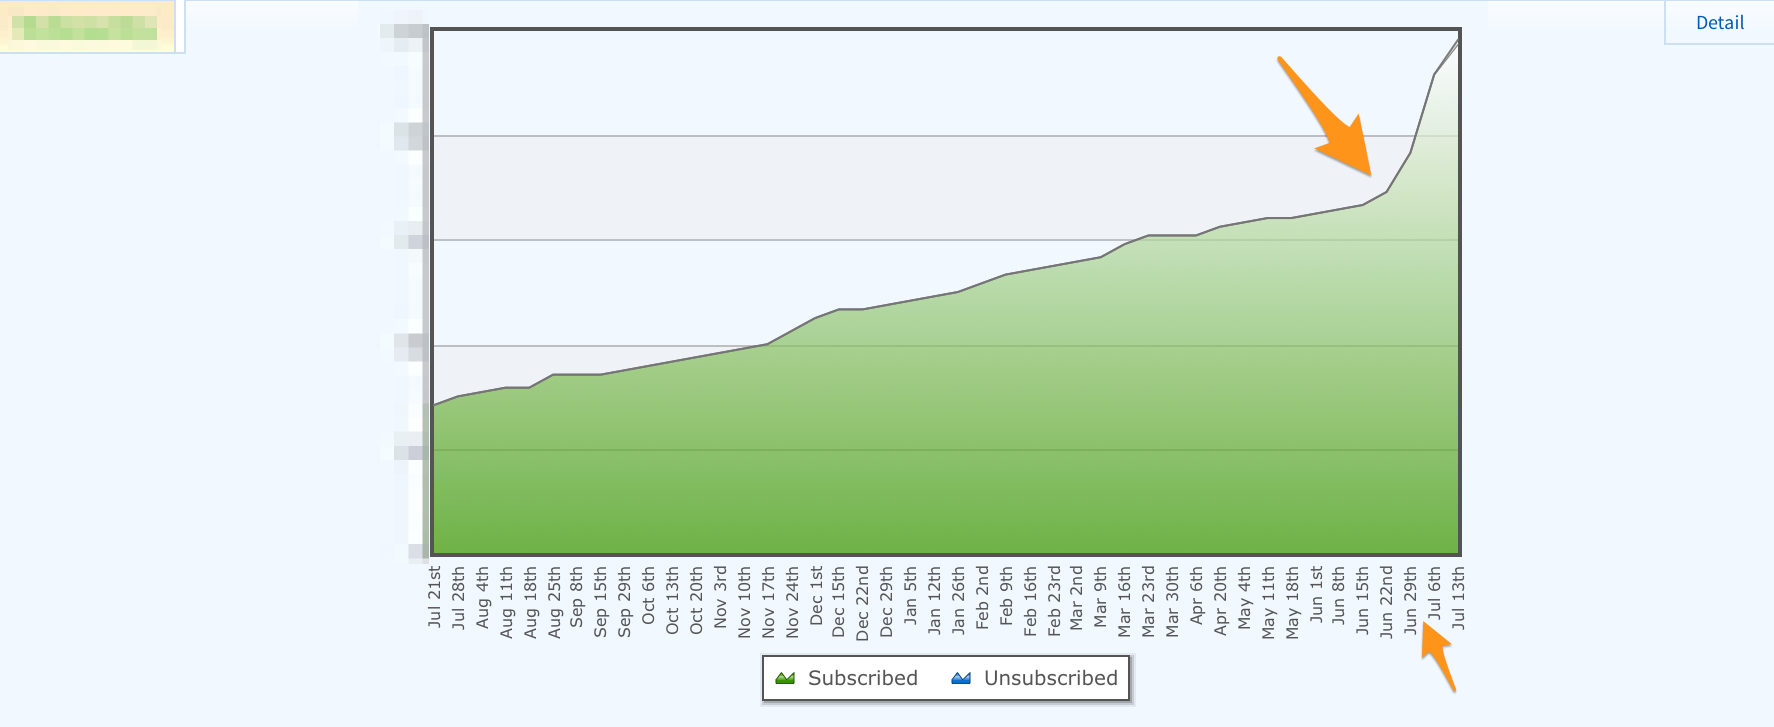 Weekly Subscriber Growth